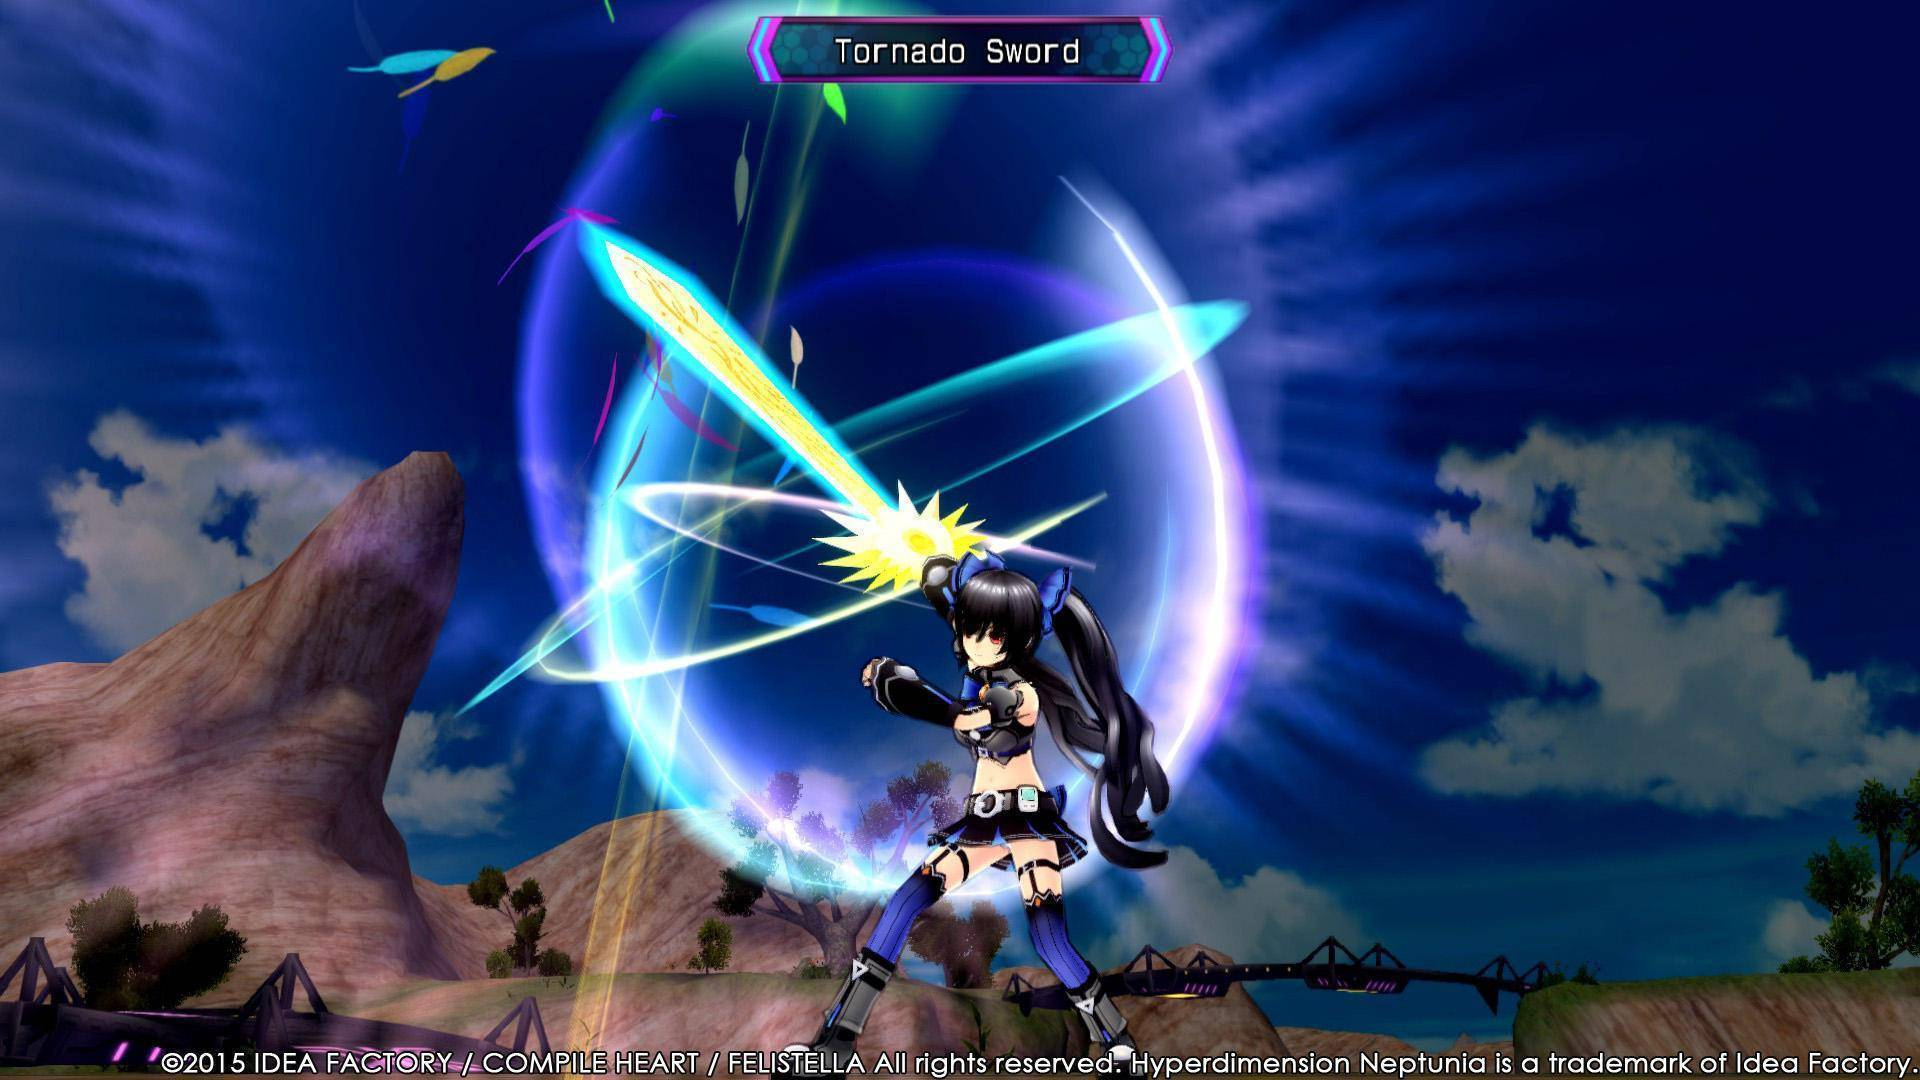 Trailer von Hyperdimension Neptunia Re Birth3 V Generation  anschauen